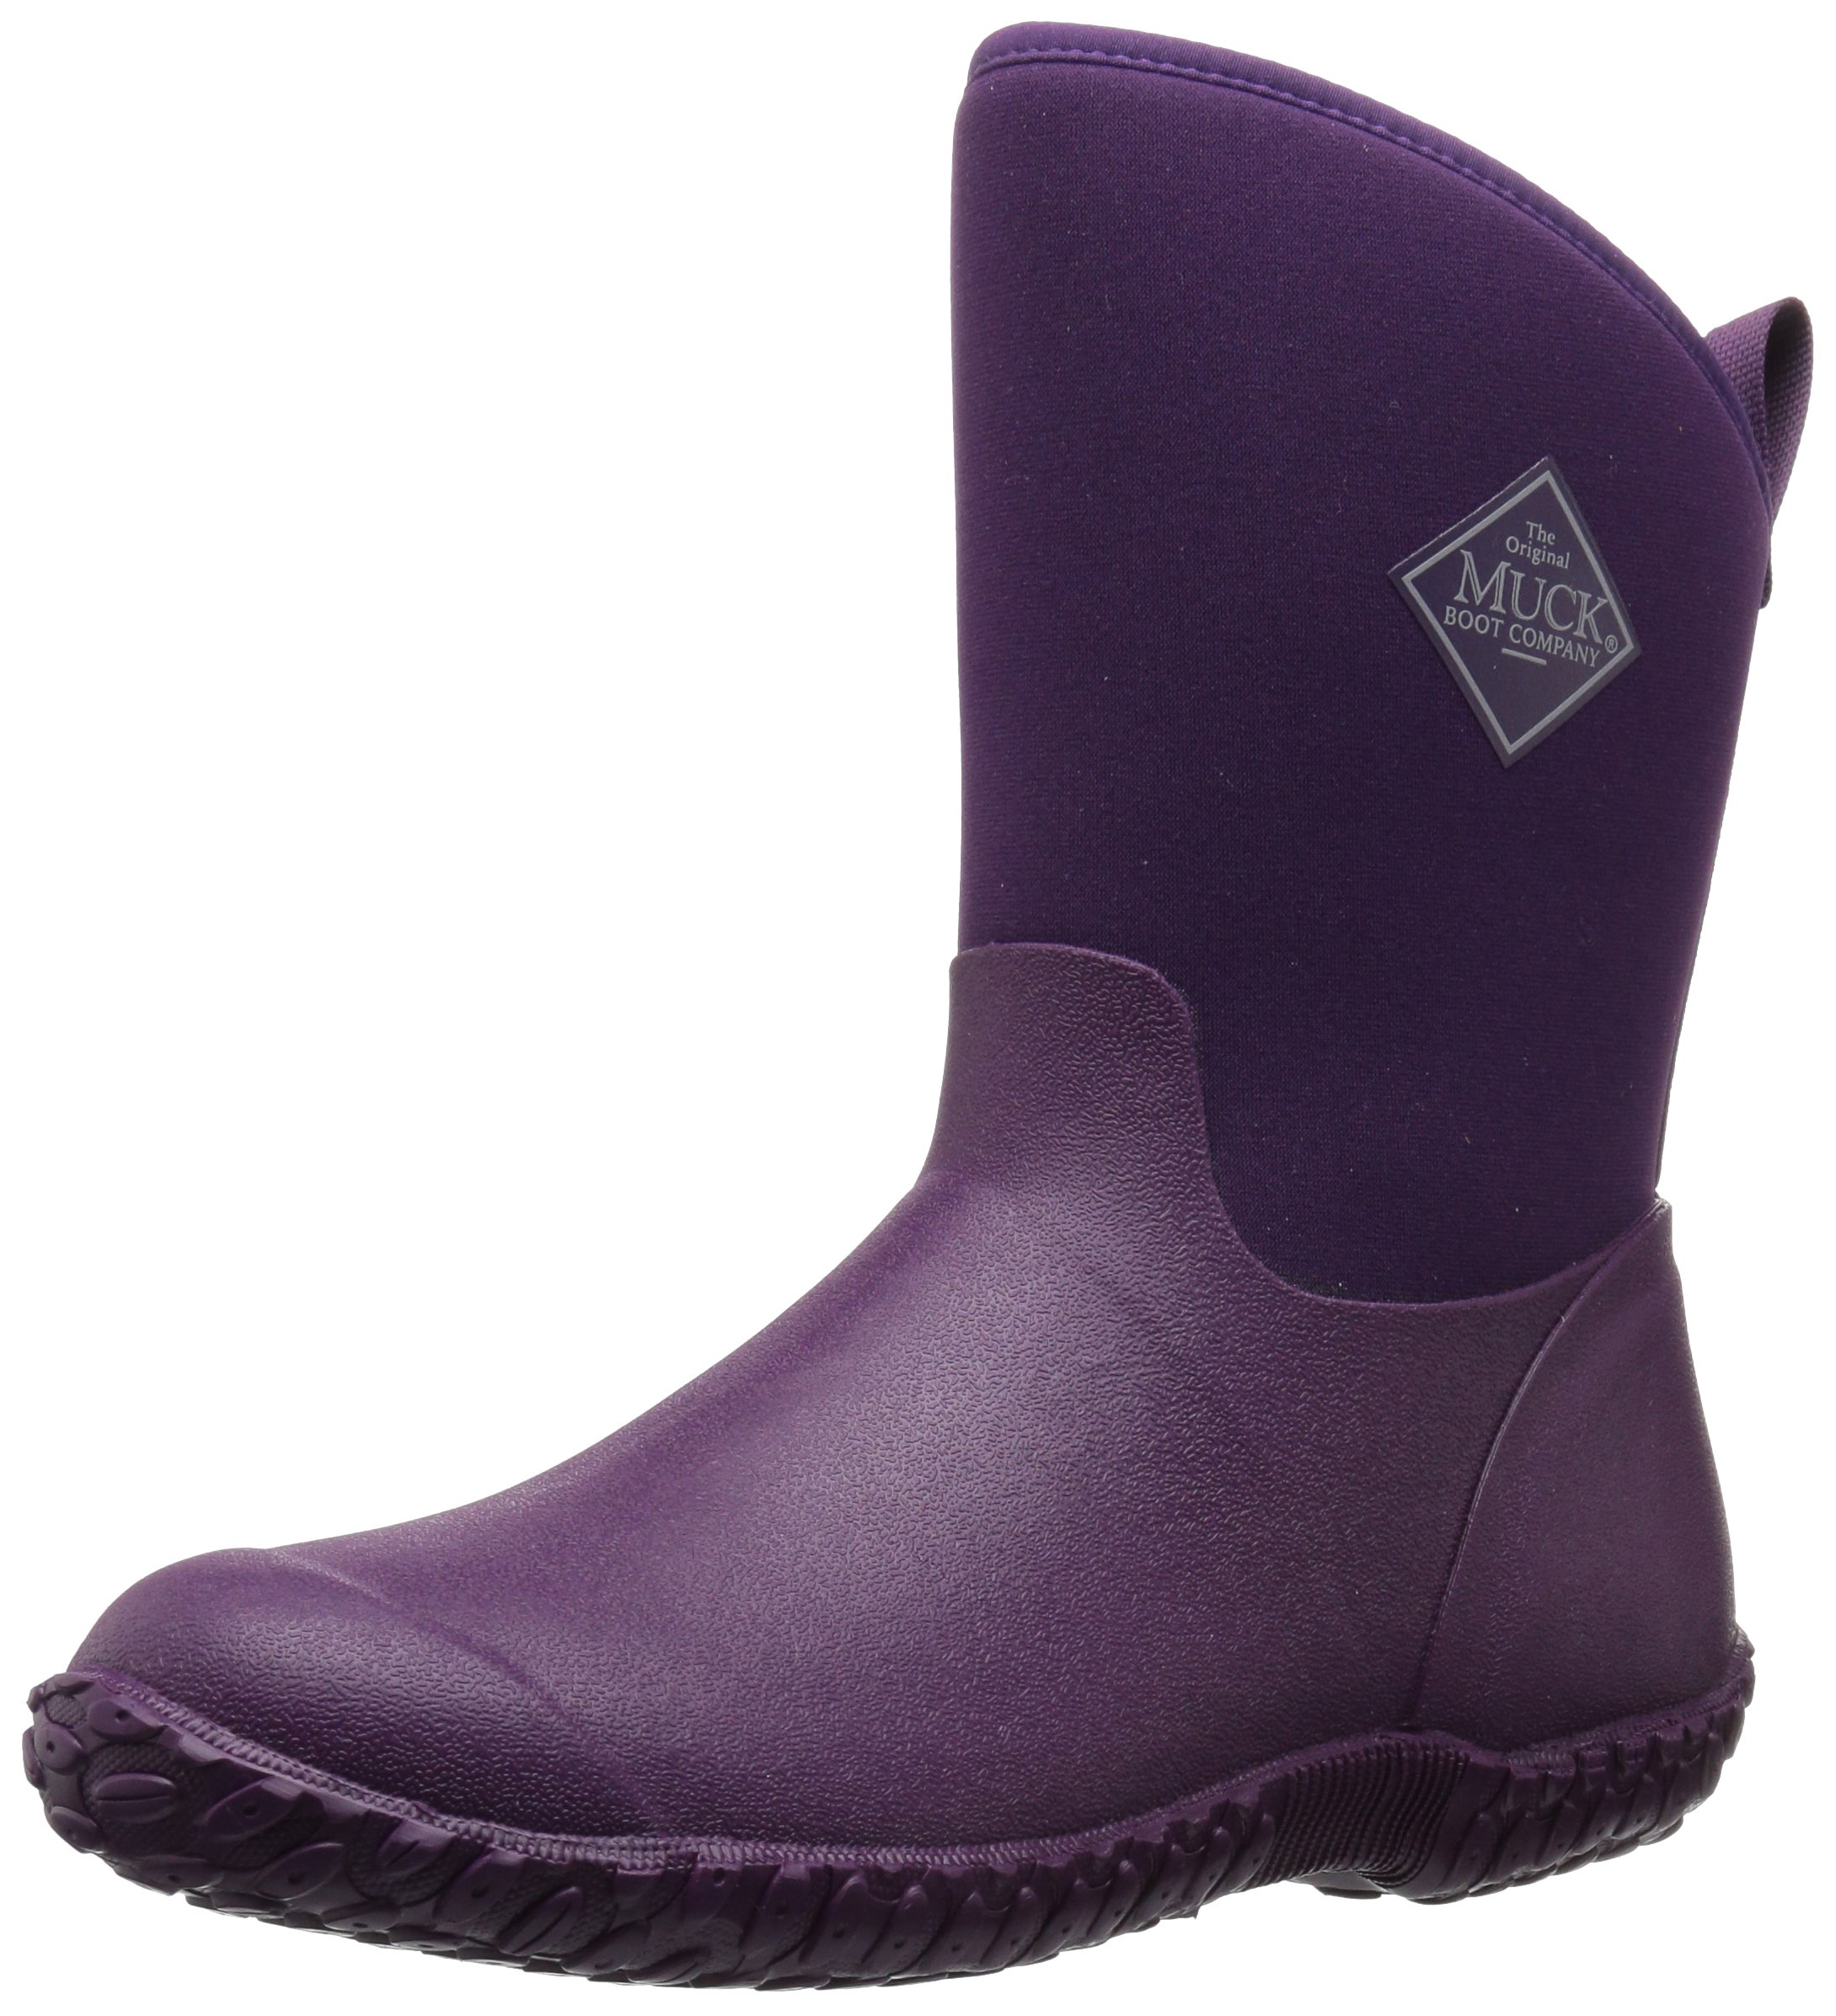 Muck Boot Women's Muckster 2 Mid Snow Boot, Purple With Floral Print Lining, 8 B US